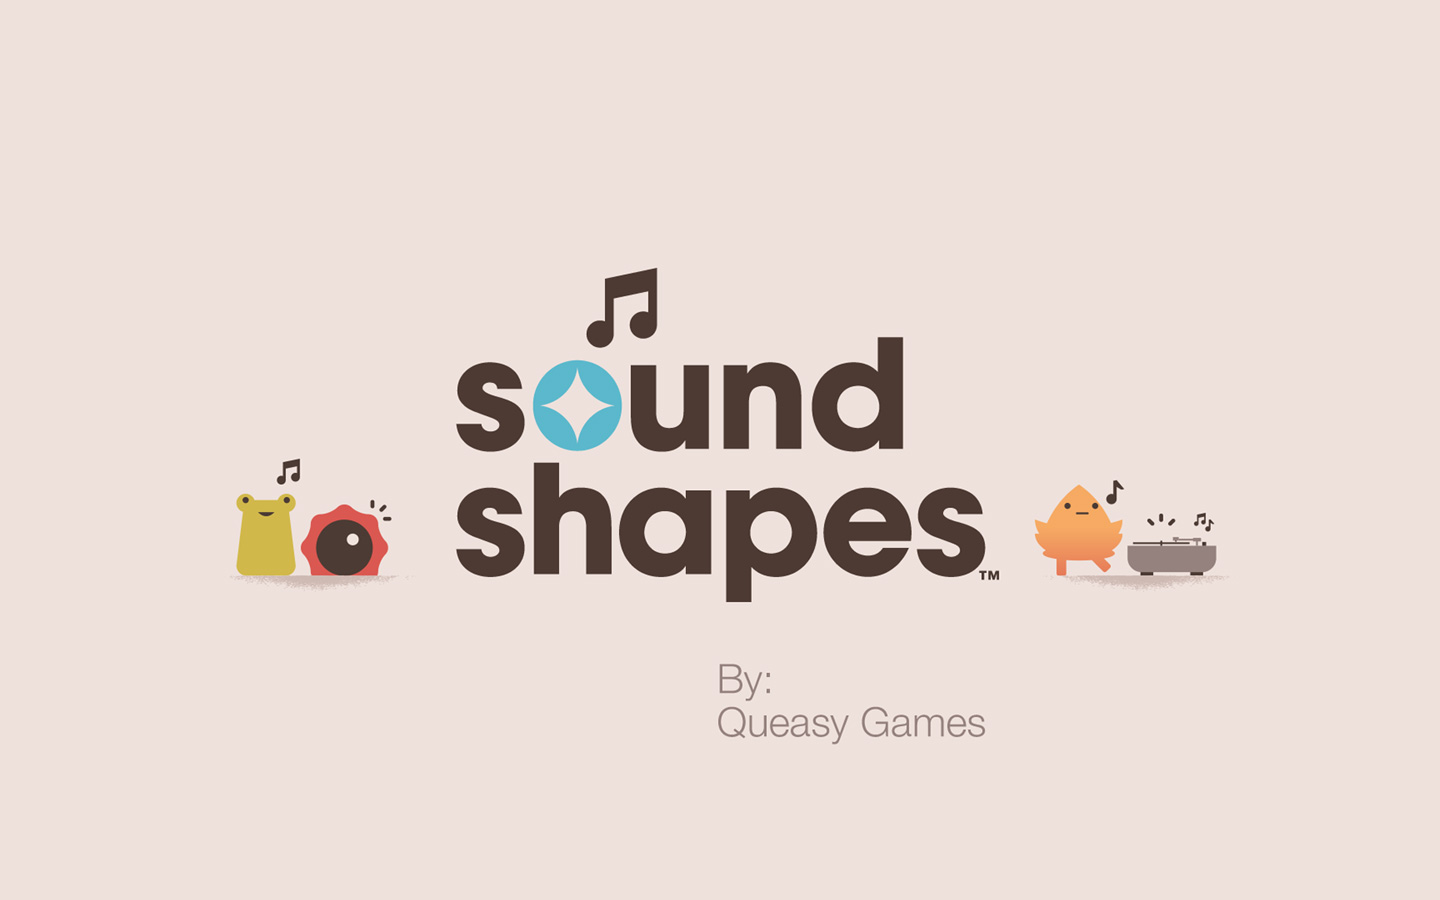 Free Sound Shapes Wallpaper in 1440x900